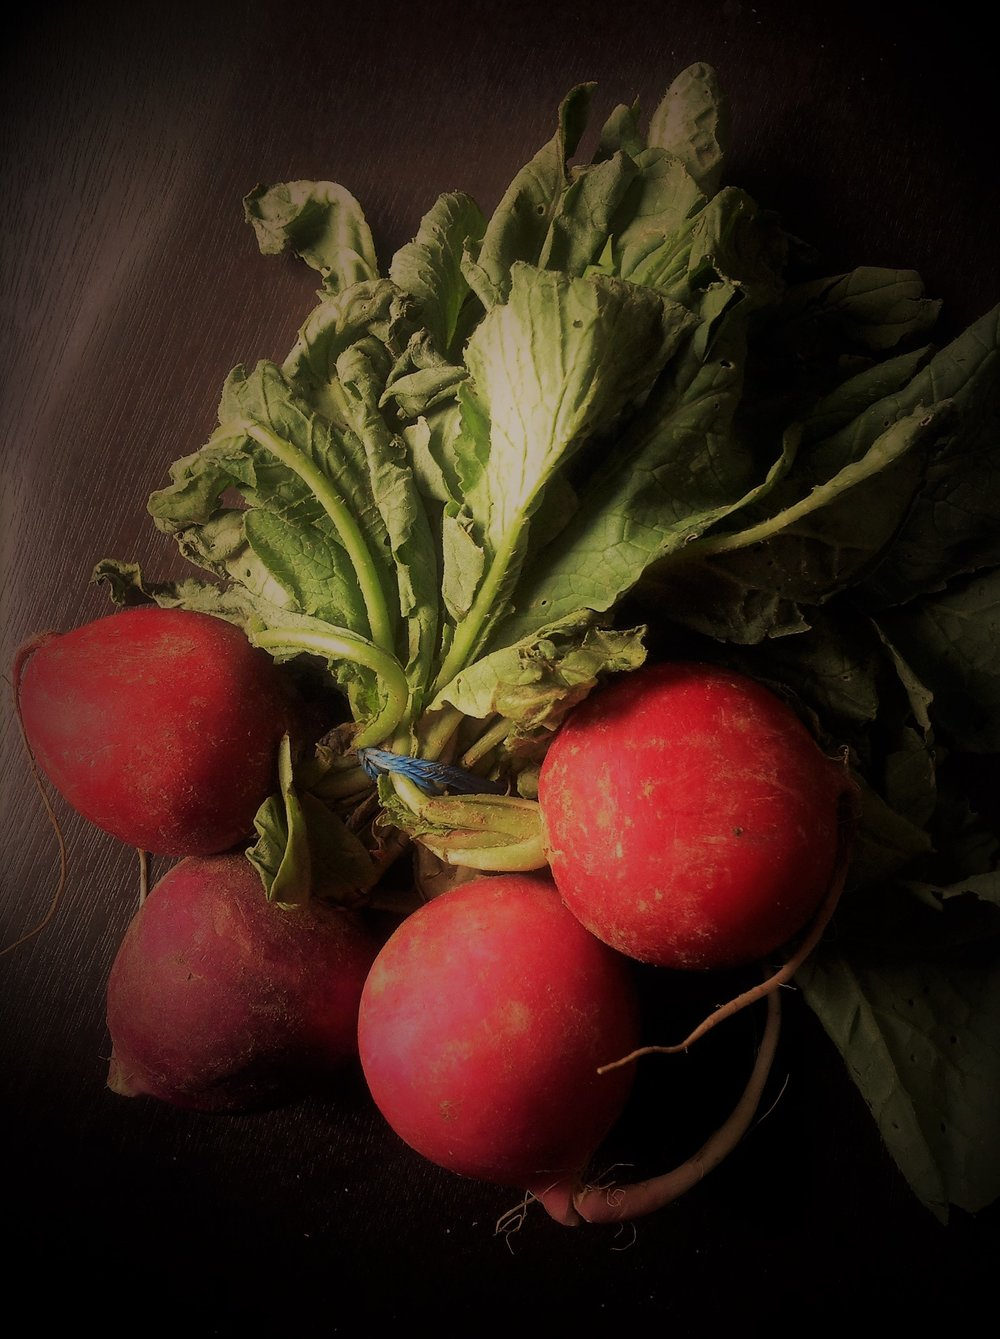 Fresh radishes are a delicious, healthy vegetable. Enjoy raw for a crispy texture on salads or chili.  Braise or roast for your favorite oil-free vegan recipes